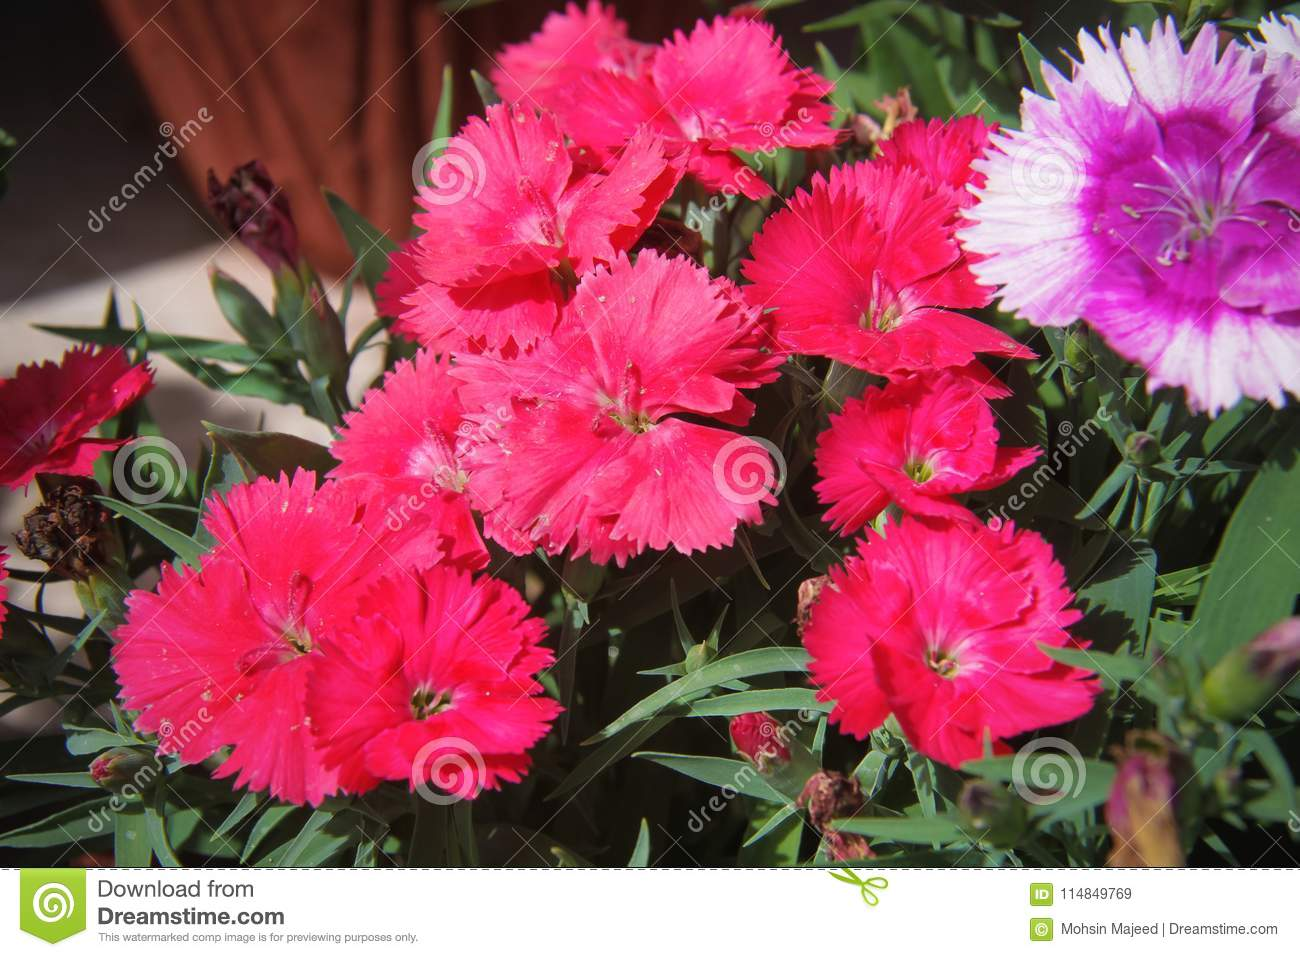 Flowers for background beautiful stock image image of bloom download flowers for background beautiful stock image image of bloom beautiful 114849769 izmirmasajfo